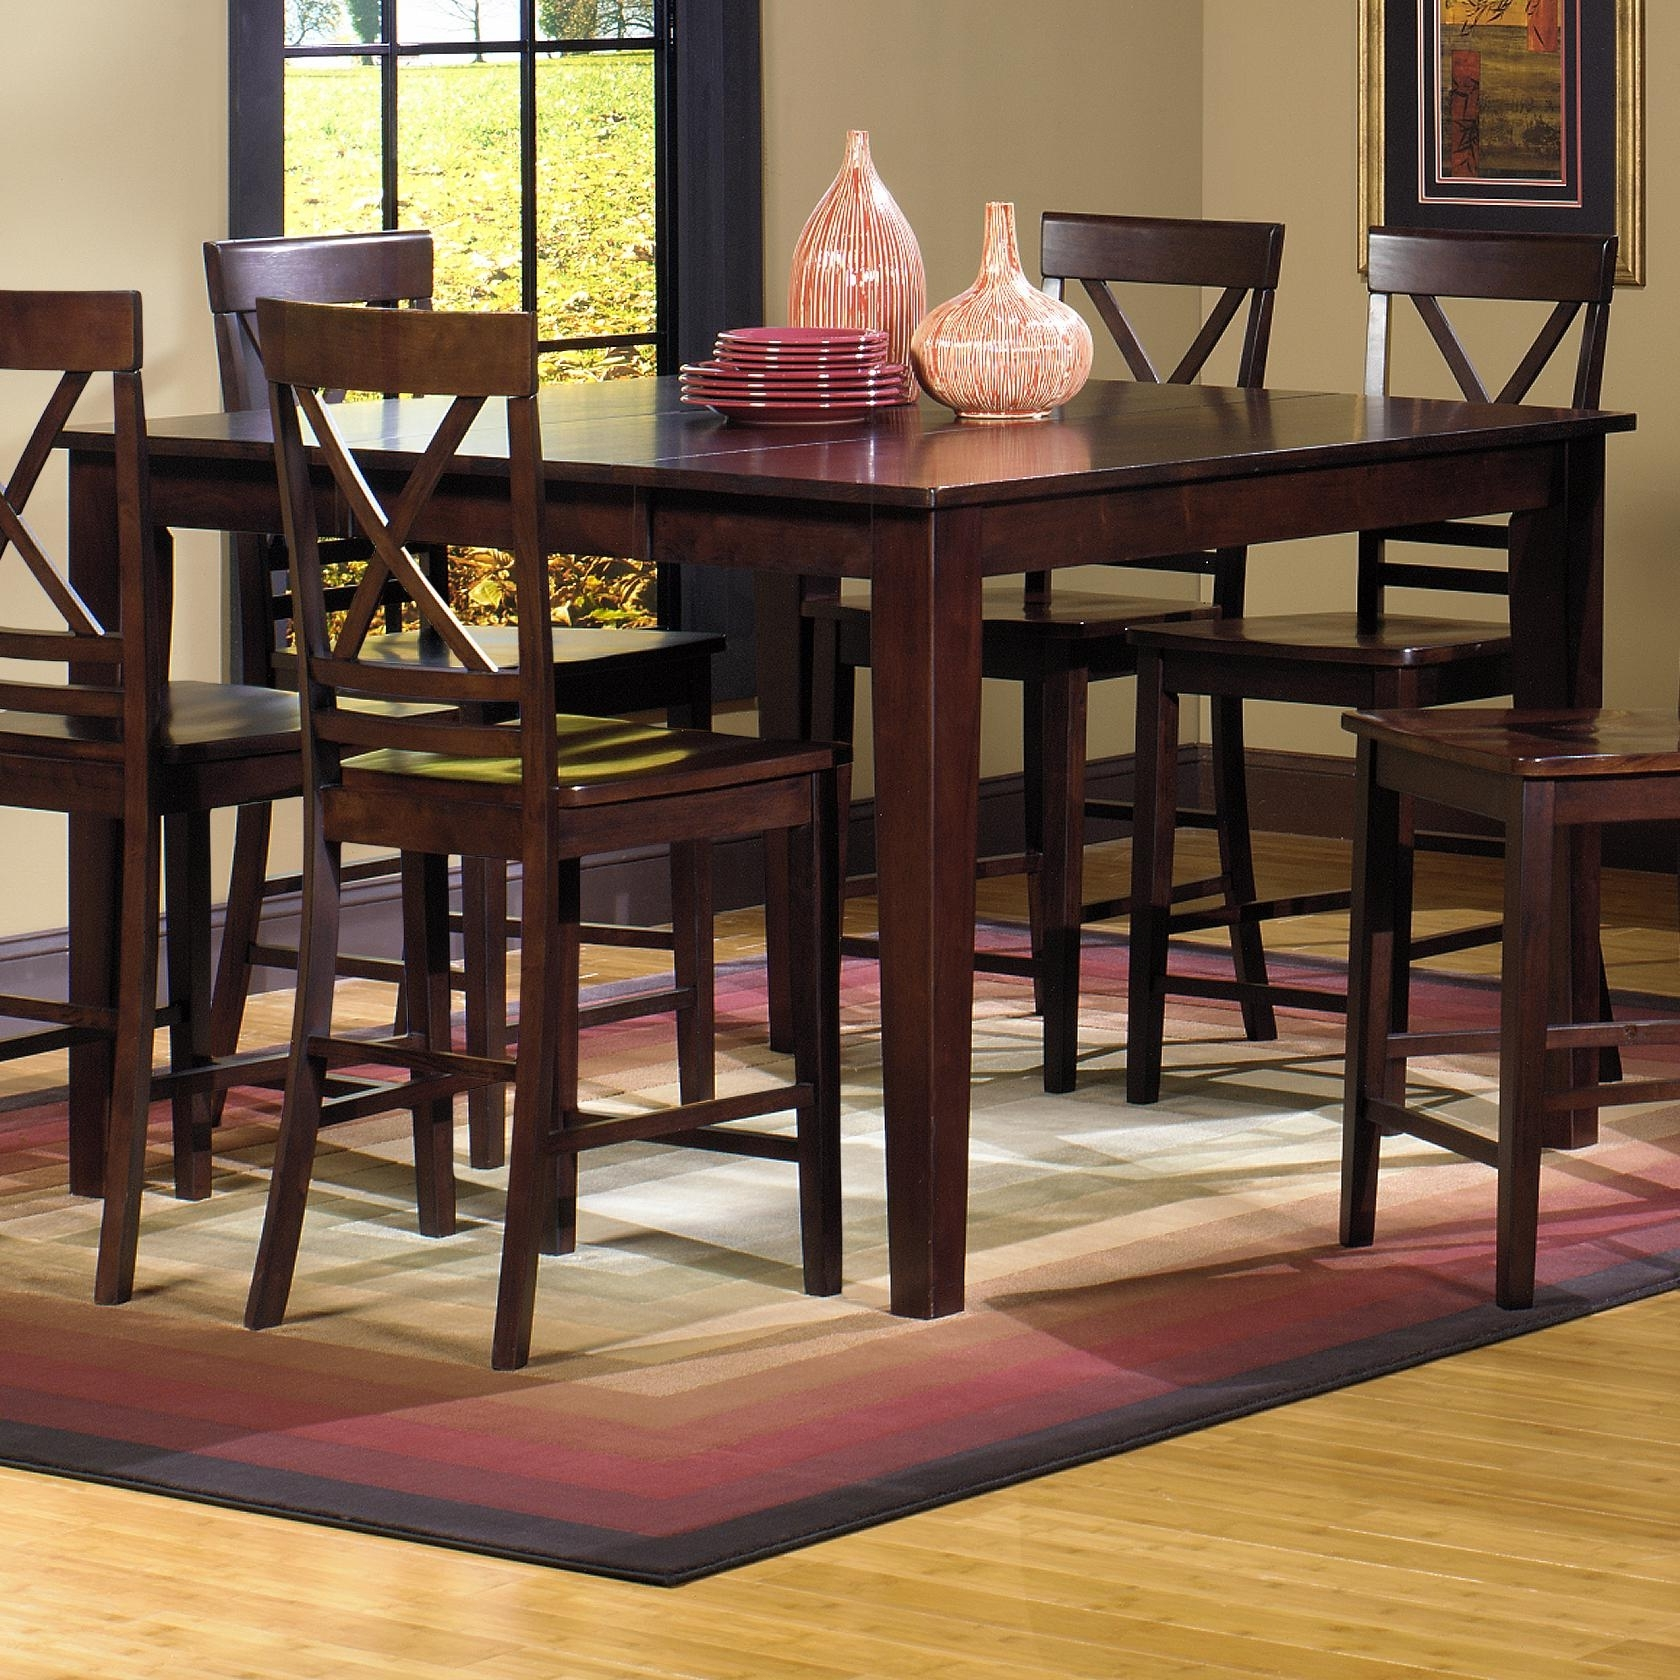 Newest Progressive Furniture Winston Counter Dining Table With Self Storing Inside Lindy Espresso Rectangle Dining Tables (View 15 of 25)